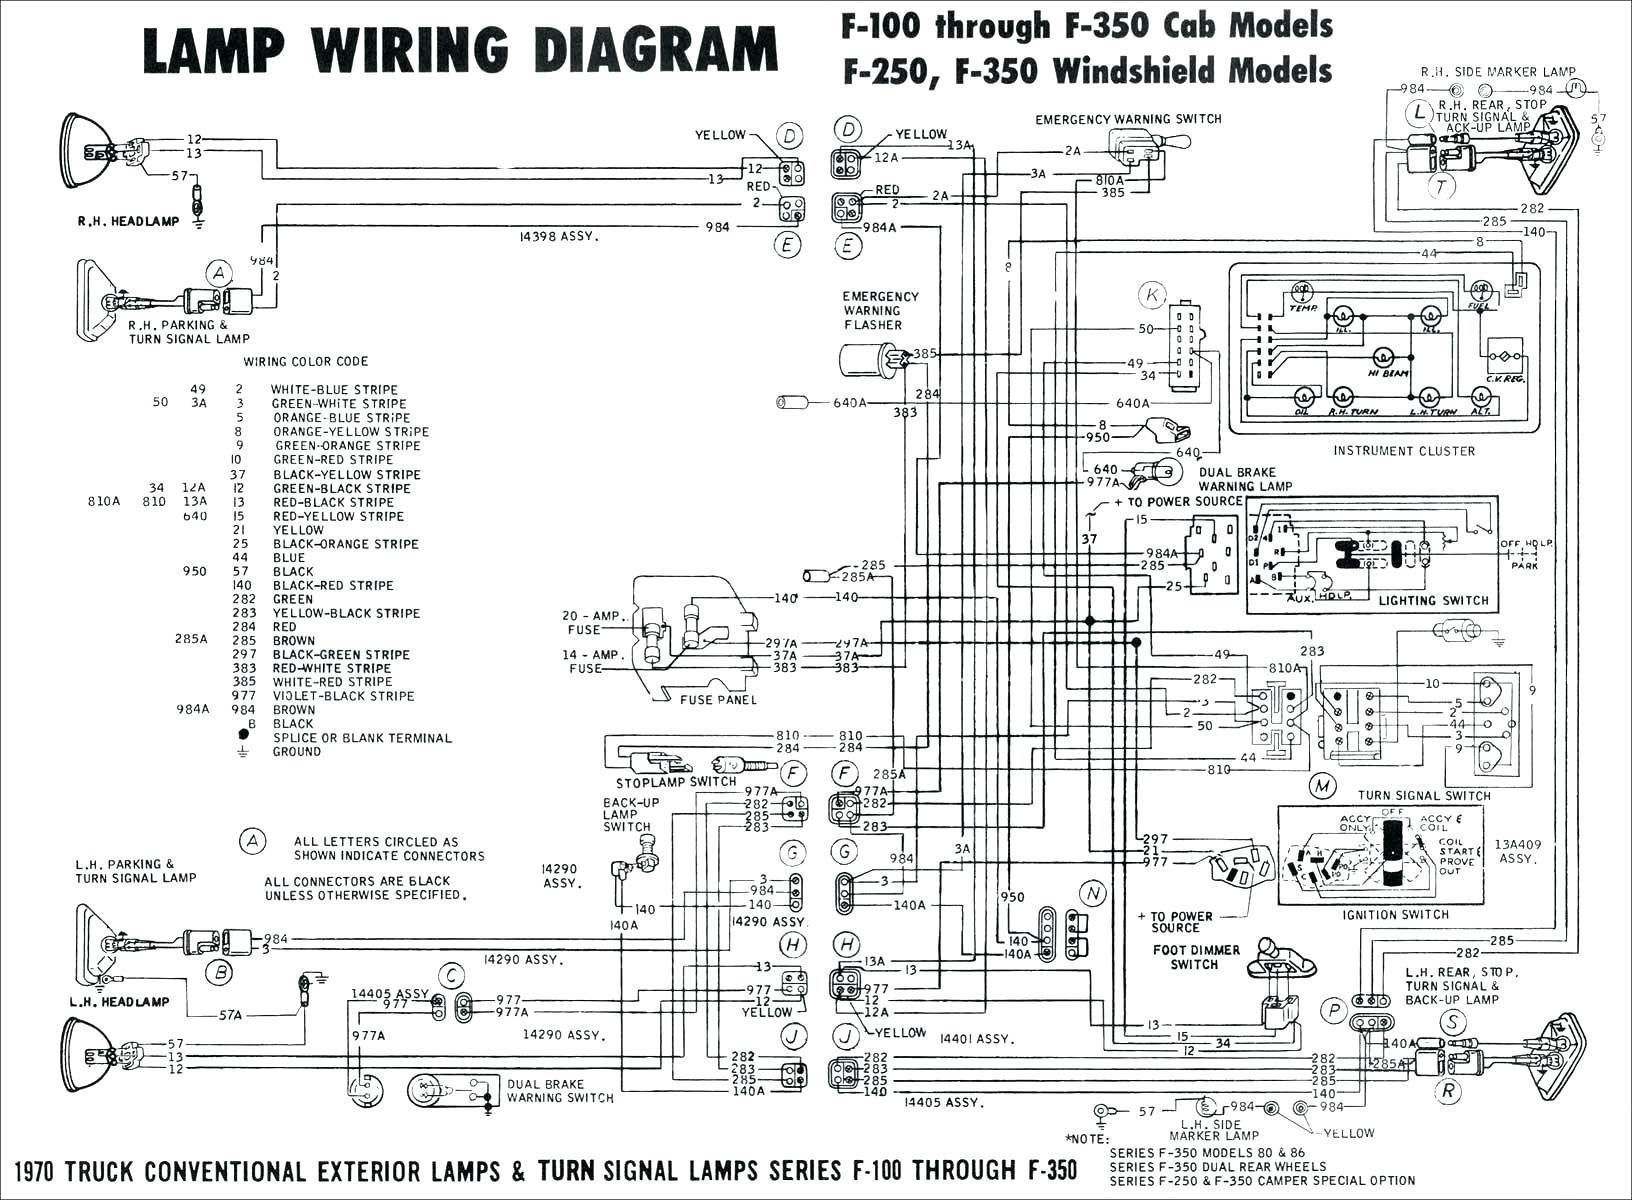 Bendix Ec 30 Wiring Diagram - All Wiring Diagram - Wabco Abs Wiring Diagram